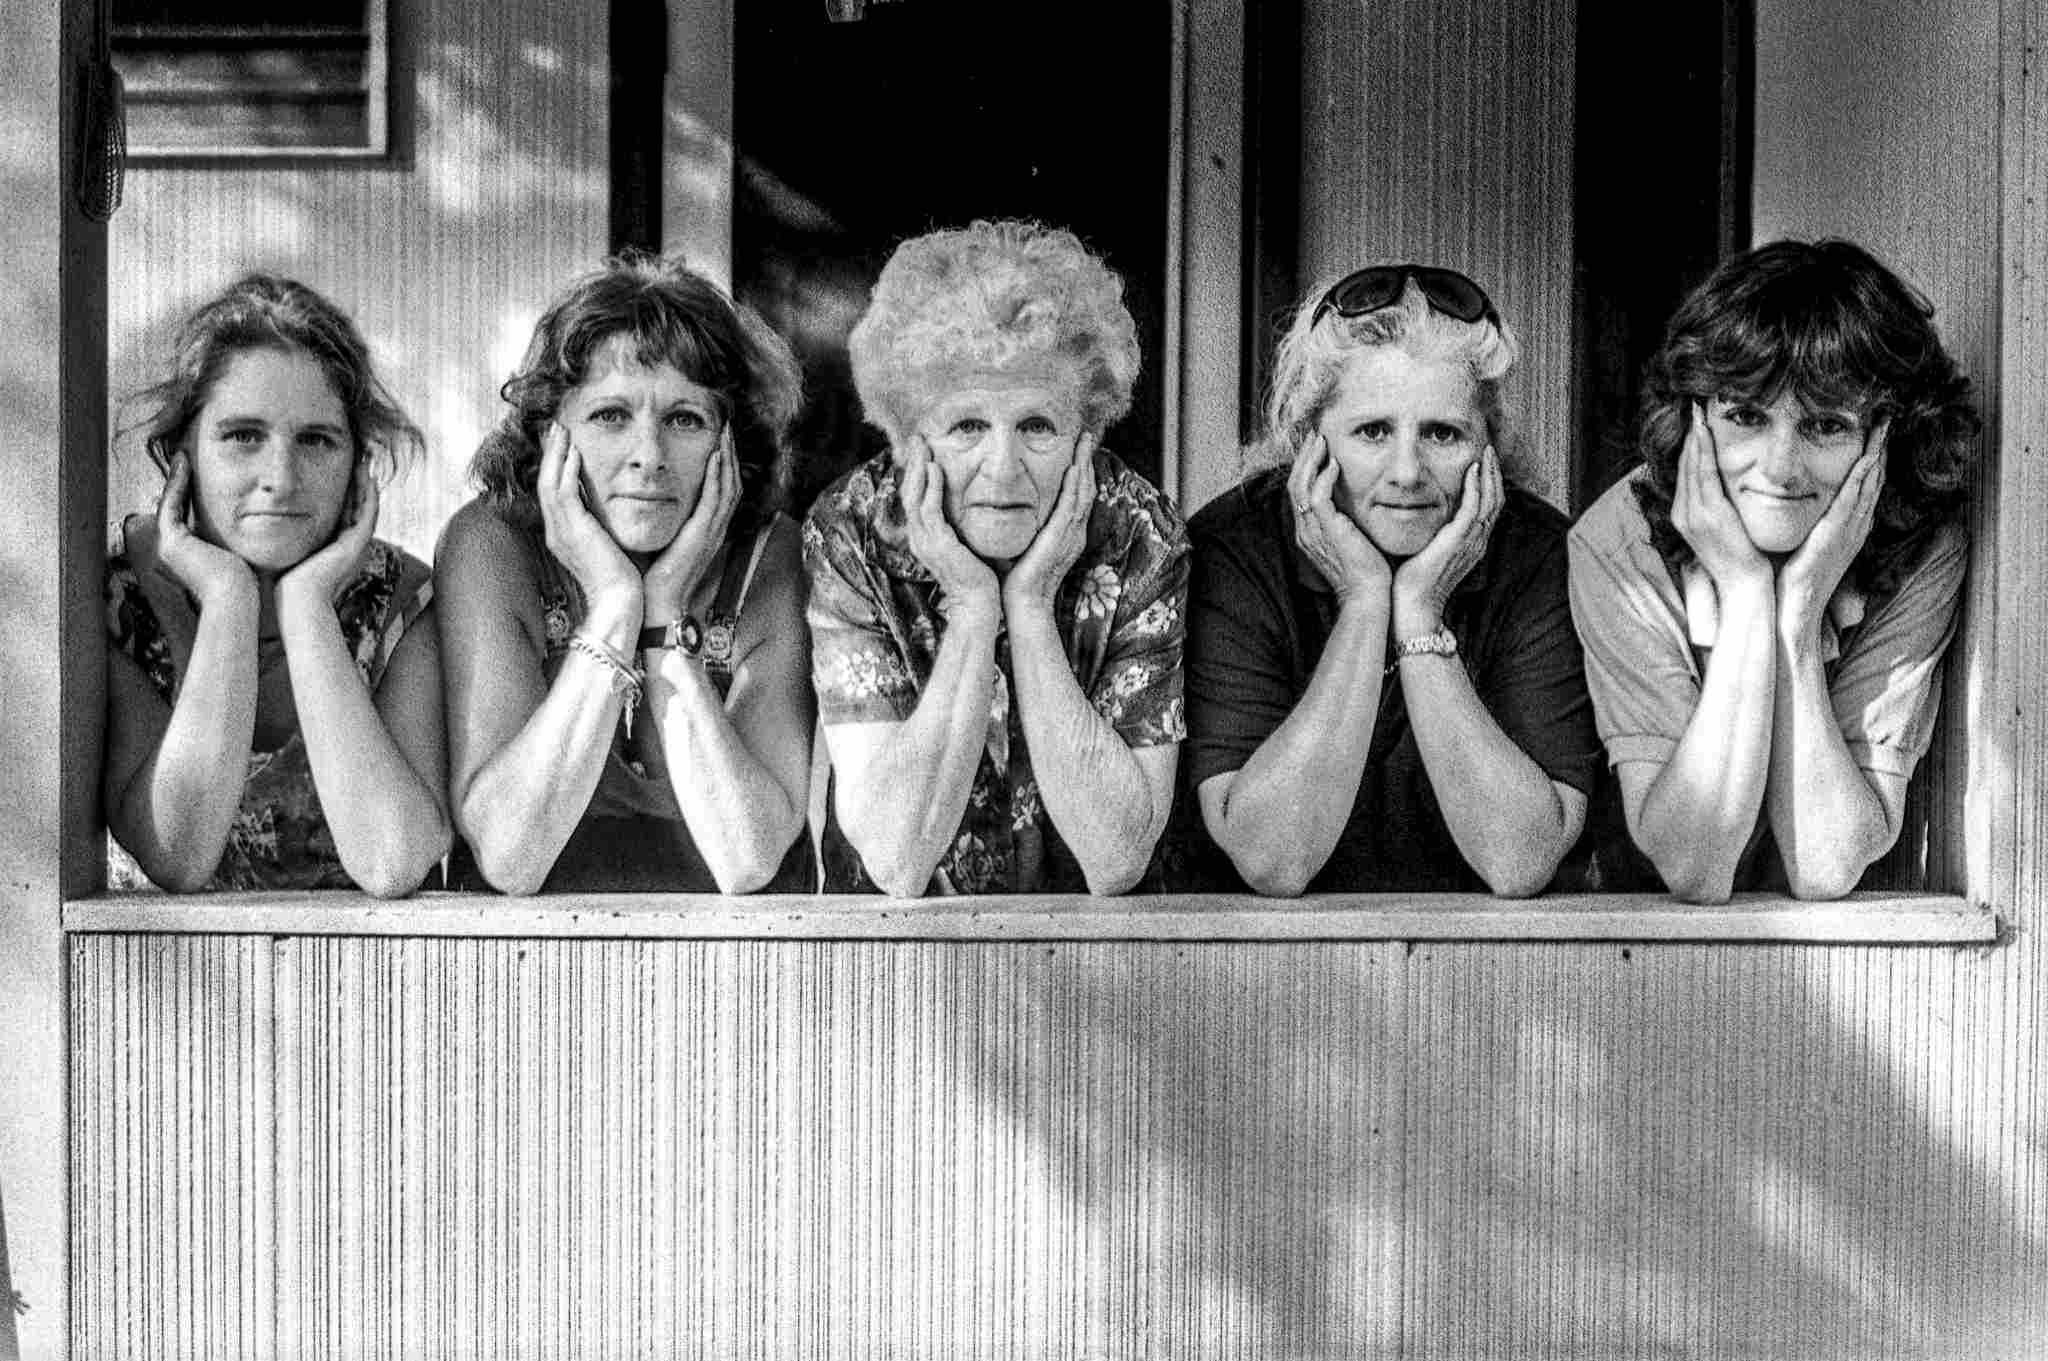 Mothers and Daughters exhibition, Mallacoota 1996. Hazle matthew